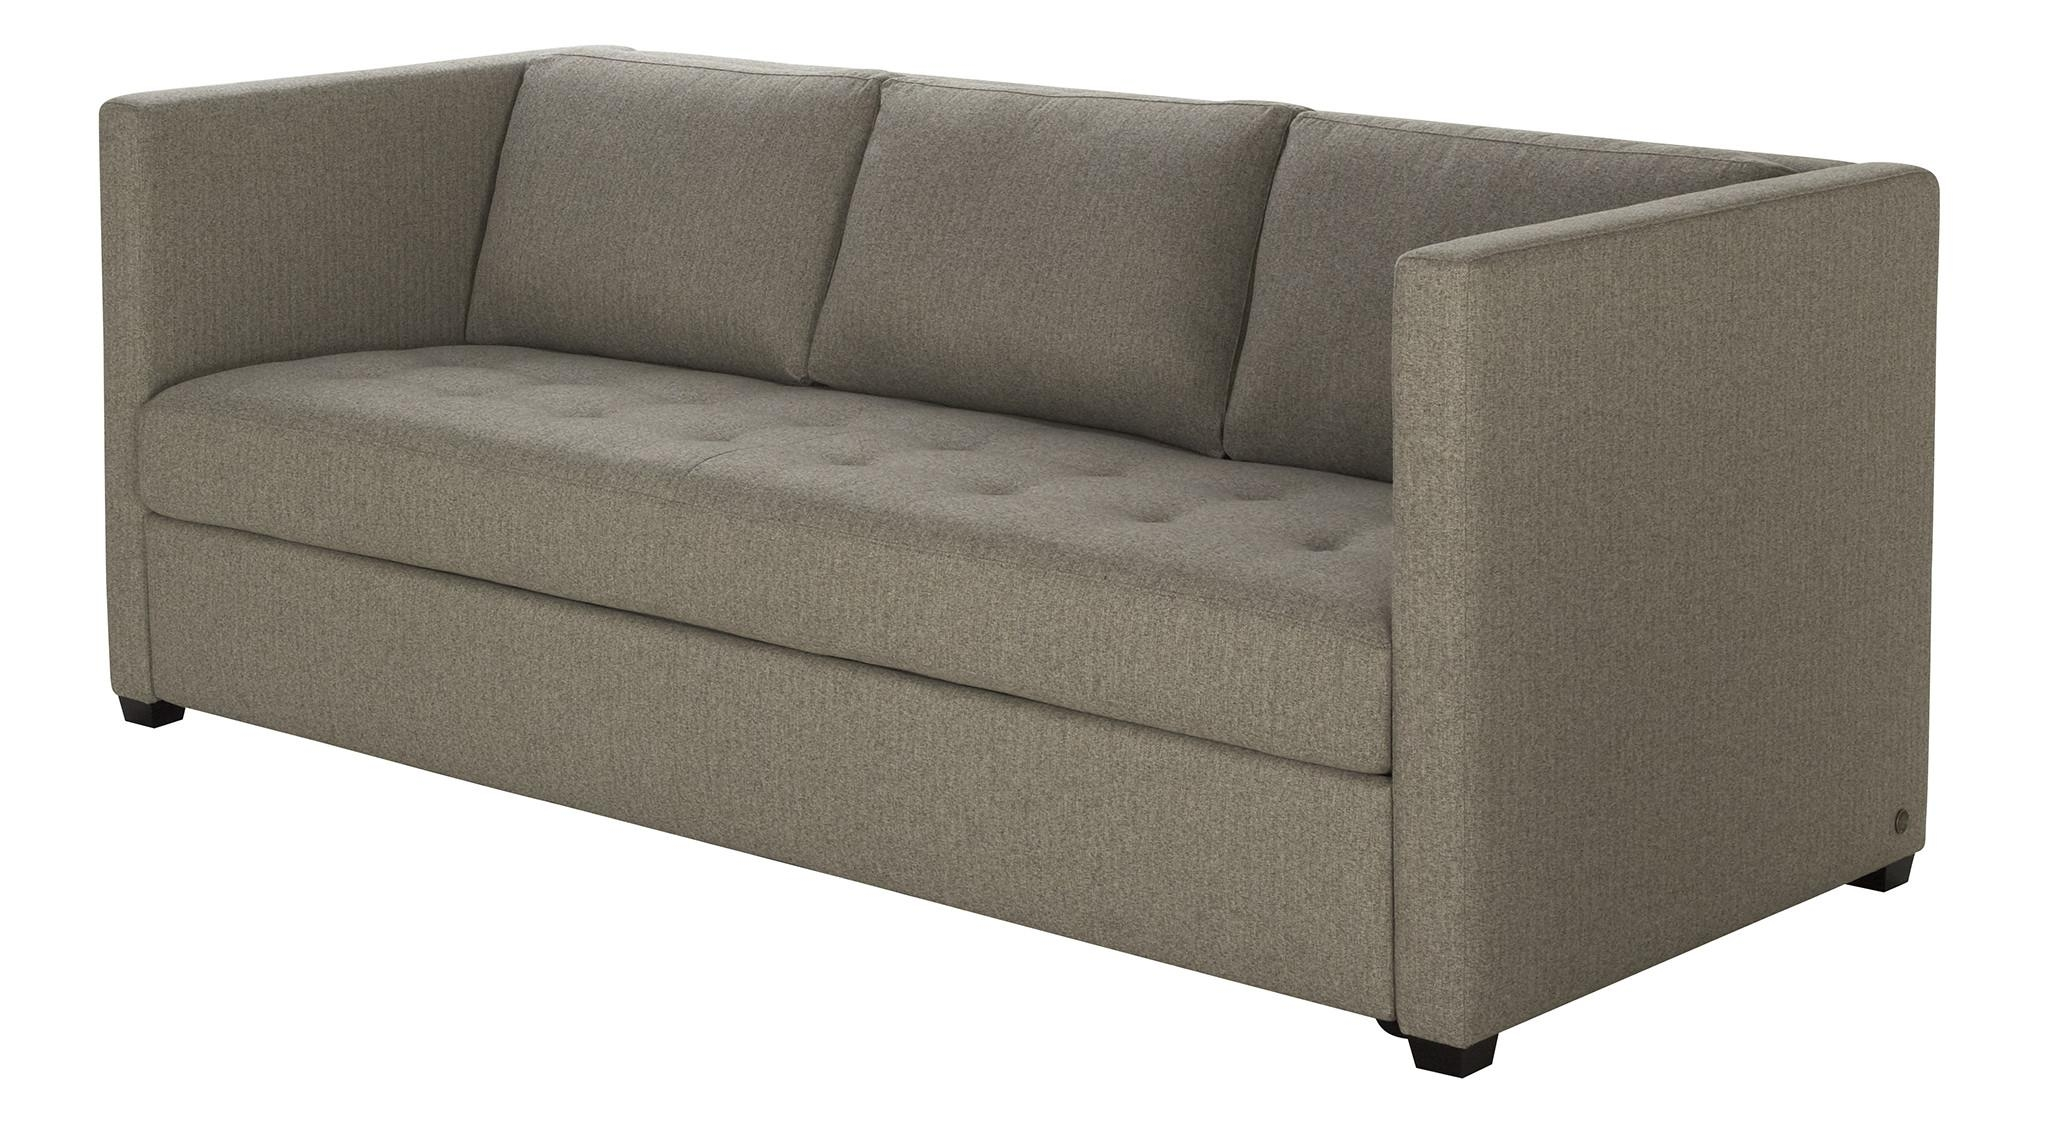 Furniture: Comfortable Tempurpedic Sofa Bed For Cozy Home Pertaining To Crate And Barrel Sleeper Sofas (Image 9 of 20)